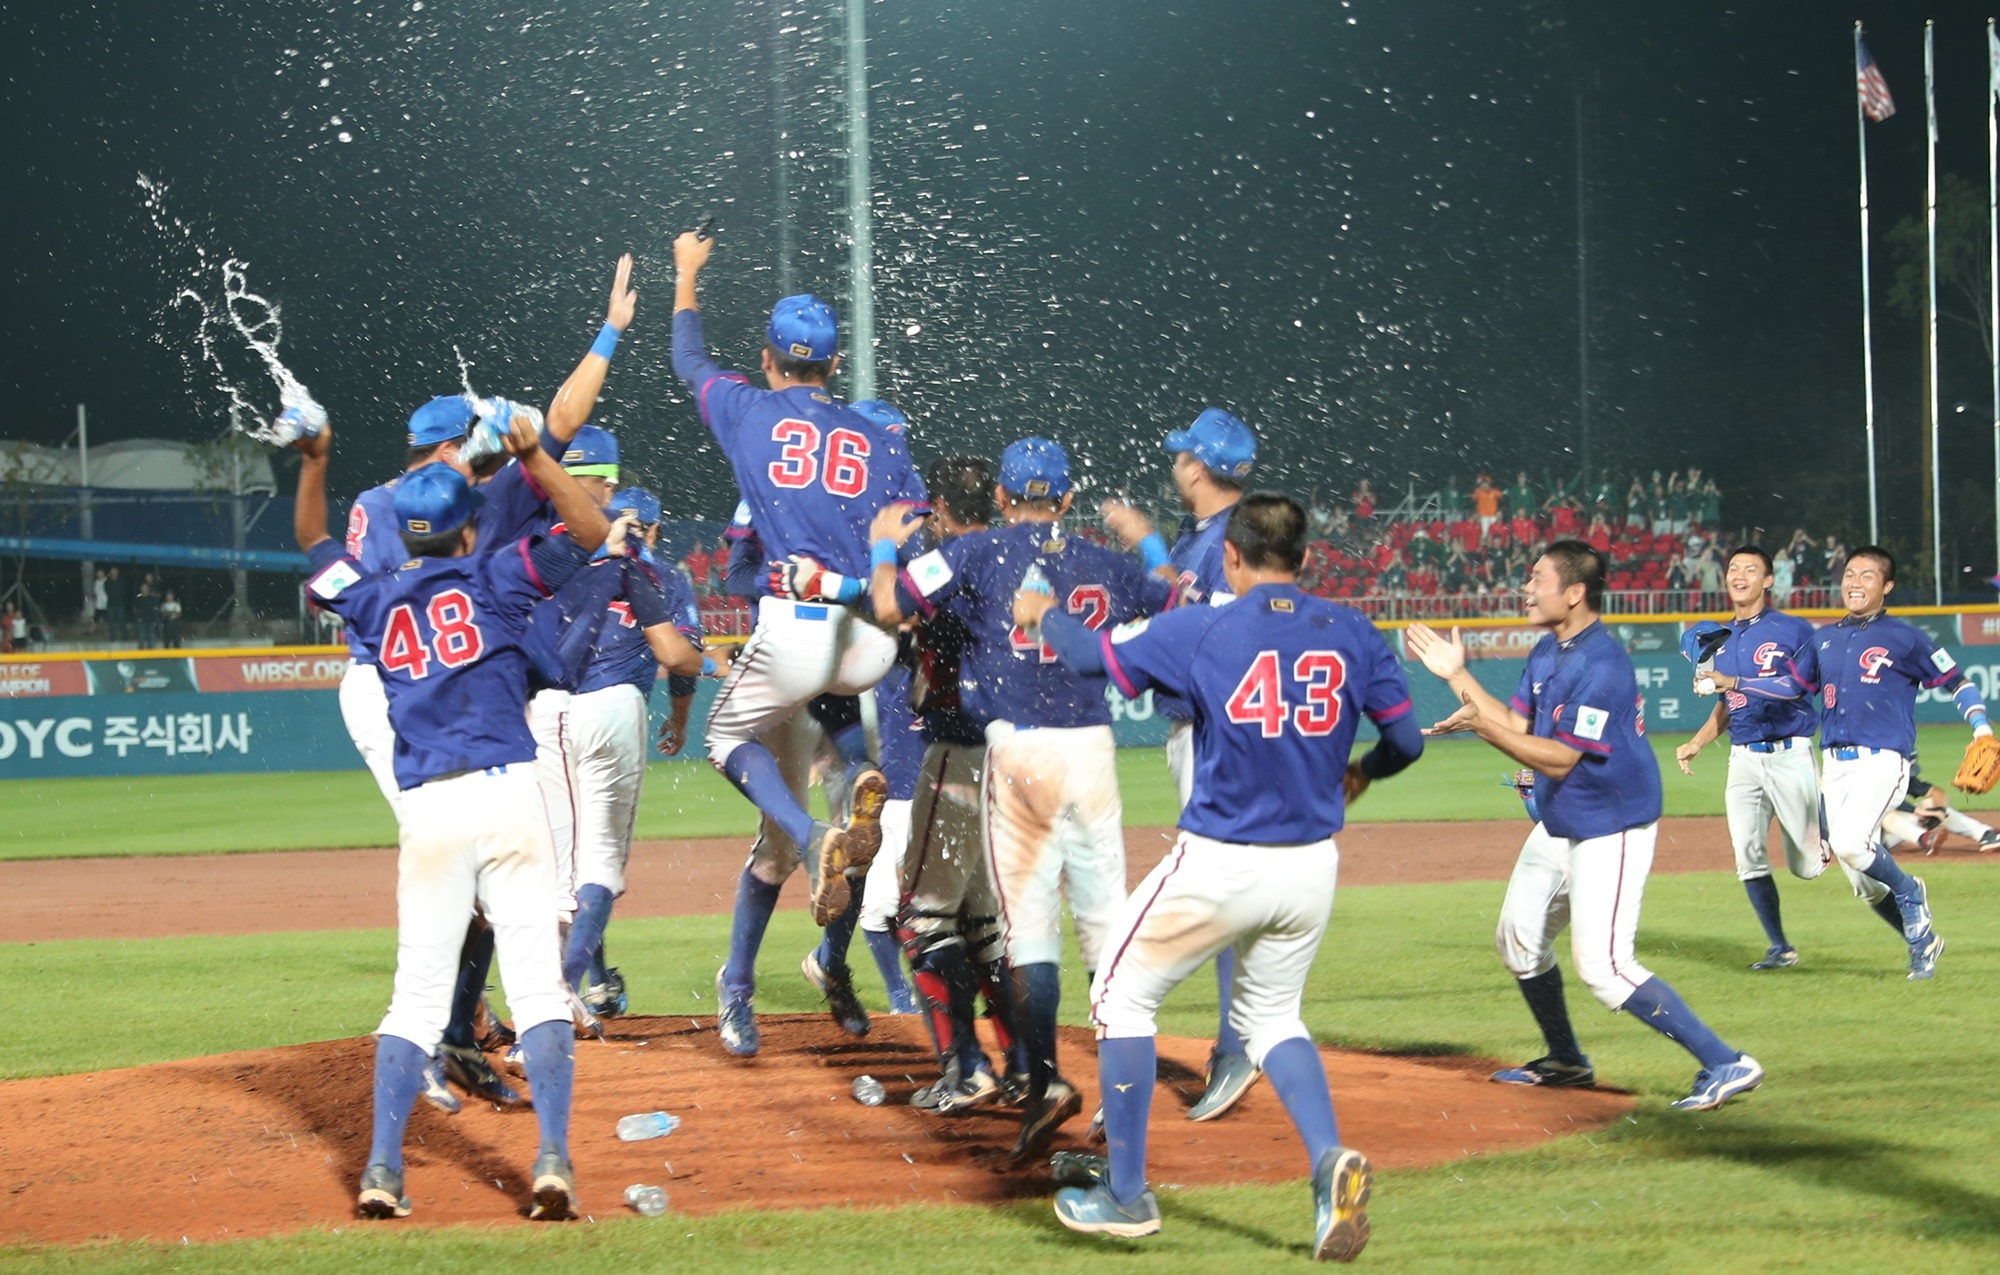 Chinese Taipei earned the win